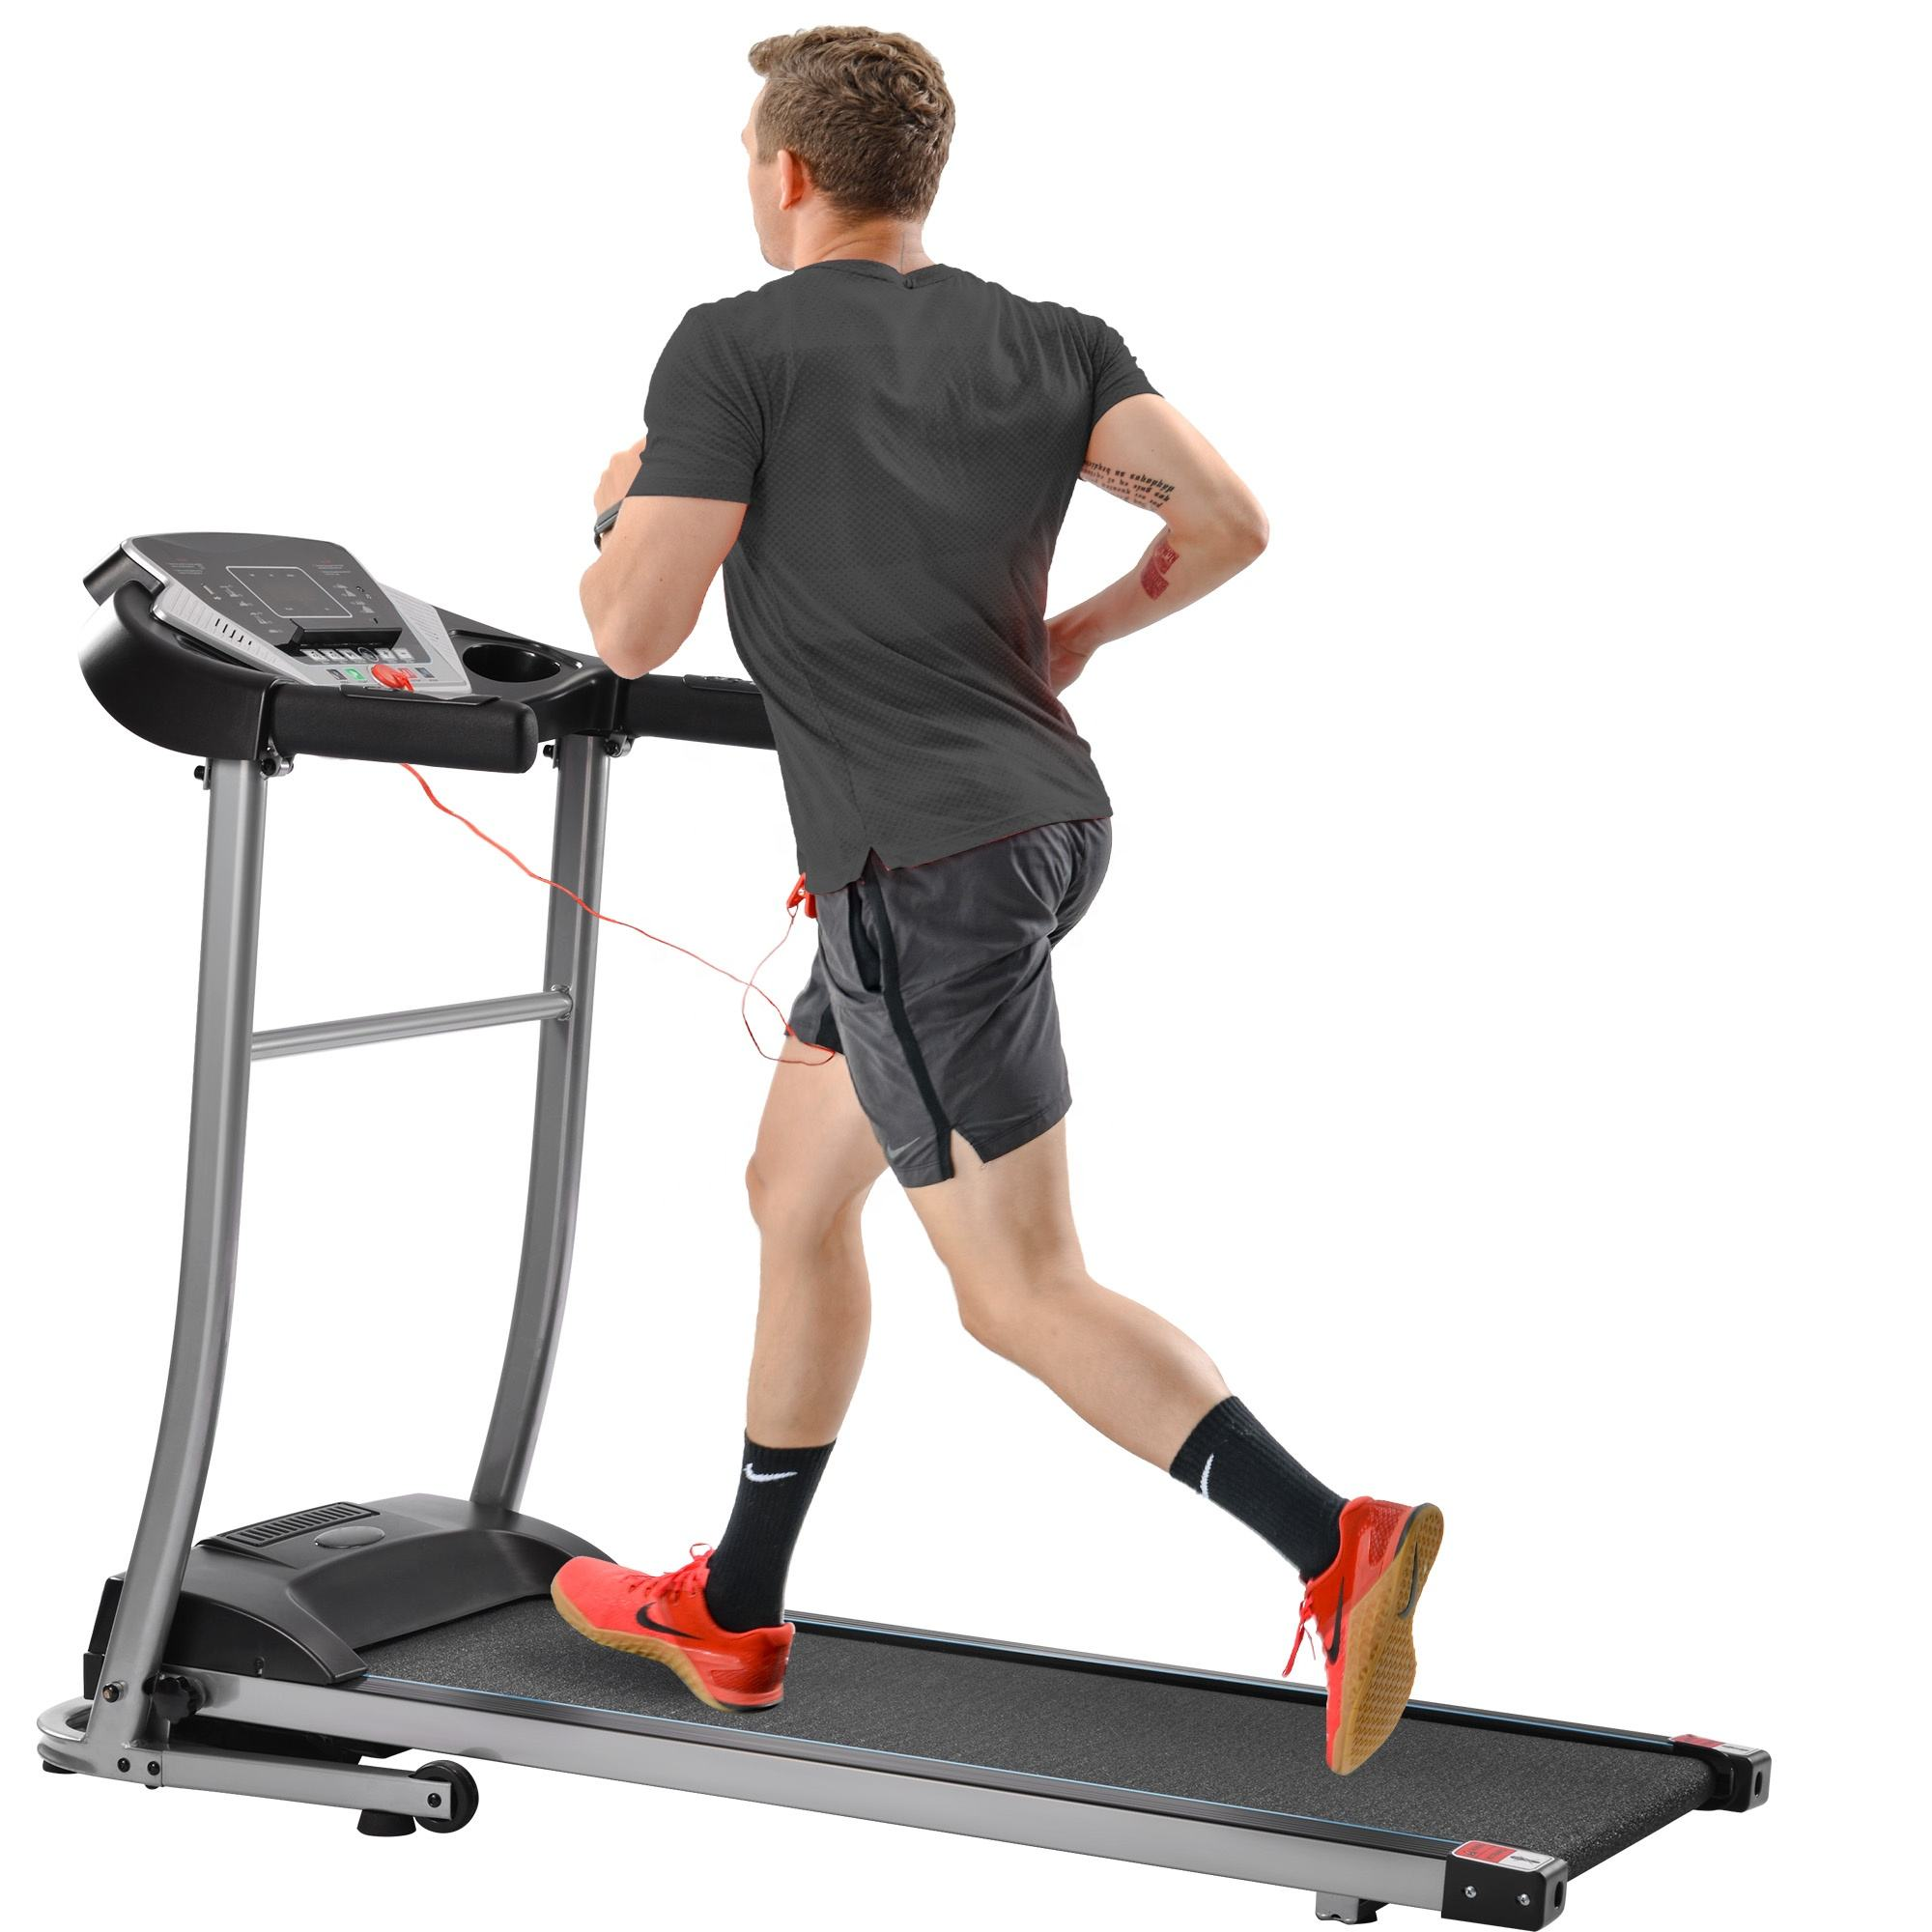 Electric Folding Treadmill Motorized Running and Jogging Fitness Machine for Home Gym with 12 Preset Programs